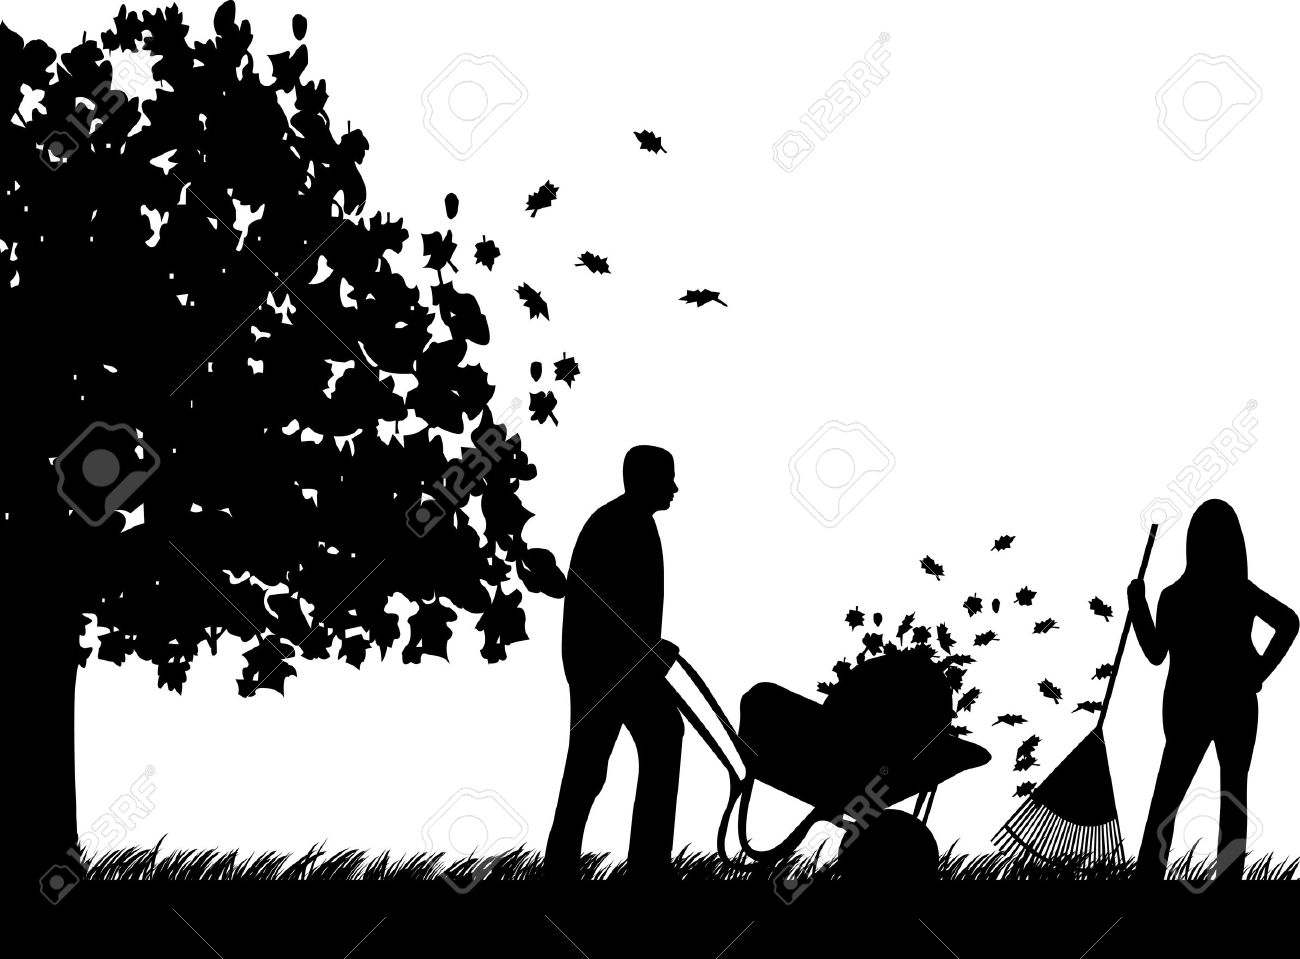 hight resolution of couple raking leaves in autumn or fall in garden or yard under the tree silhouette stock